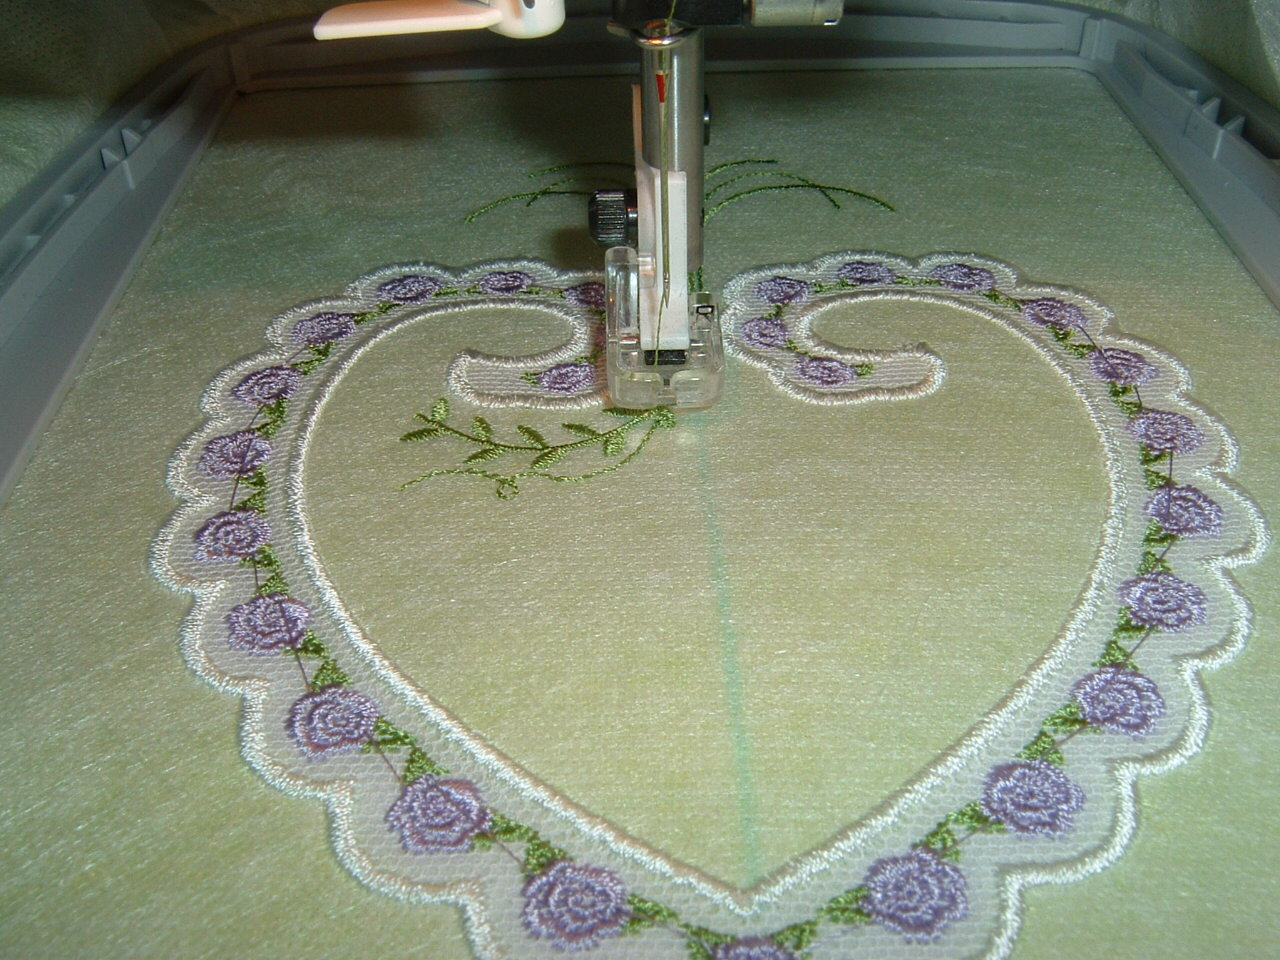 In the Hoop - Machine Embroidery